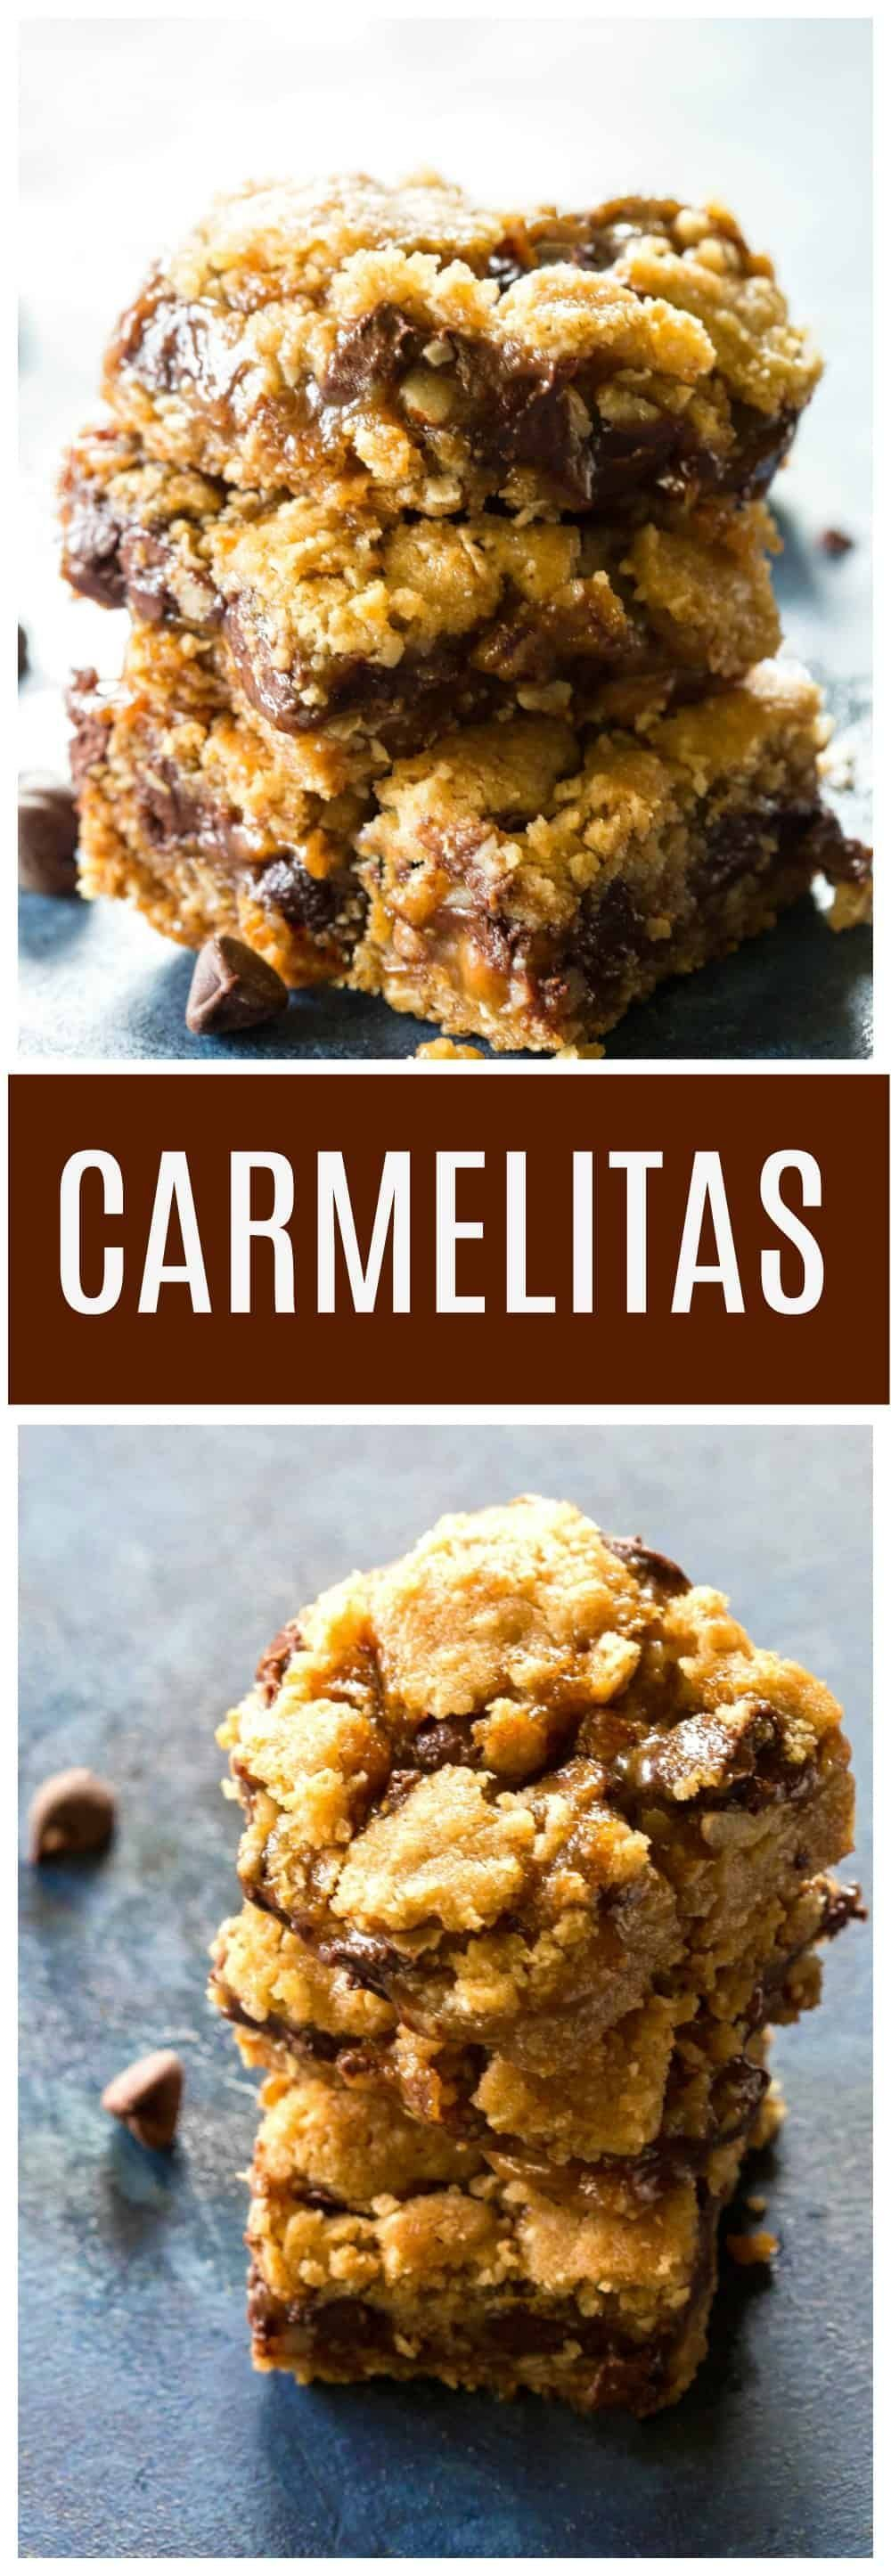 Carmelitas are loaded with caramel. chocolate chips. and oatmeal dough. This recipe is so easy! the-girl-who-ate-These Carmelitas are loaded with caramel. chocolate chips. and oatmeal dough. This recipe is so easy! the-girl-who-ate-